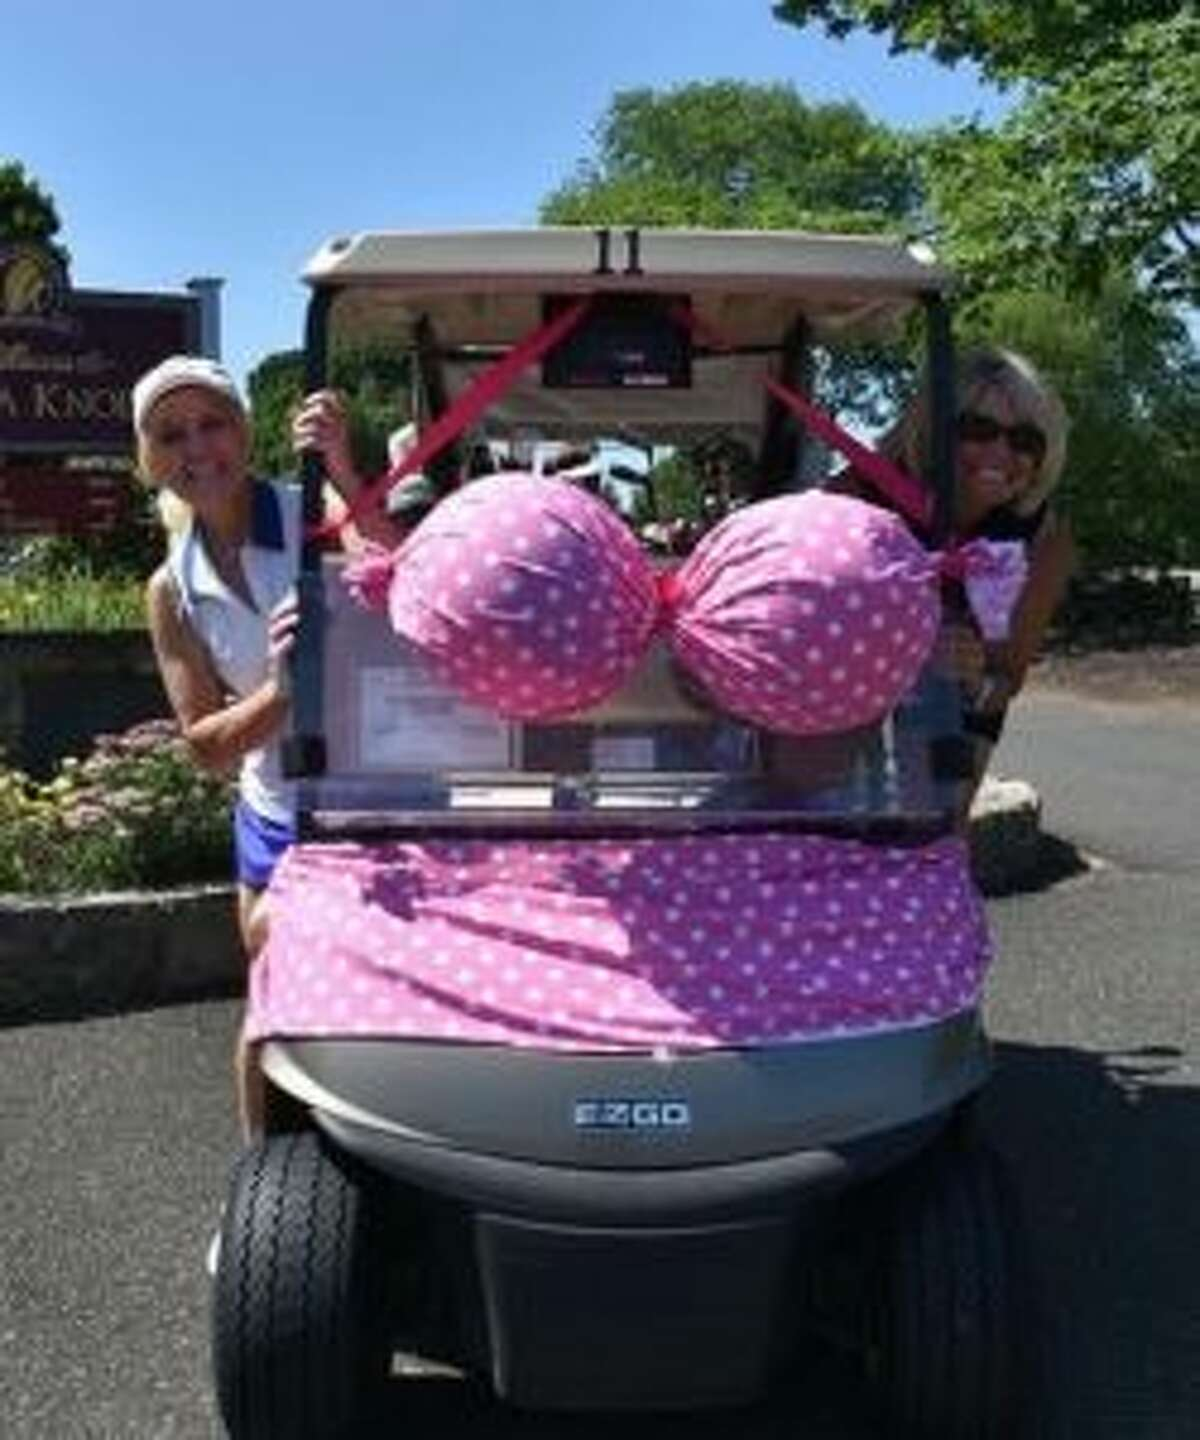 Ellen Fox from Oxford and Jeanmarie Montabana from Trumbull won the prize for best decorated golf cart.